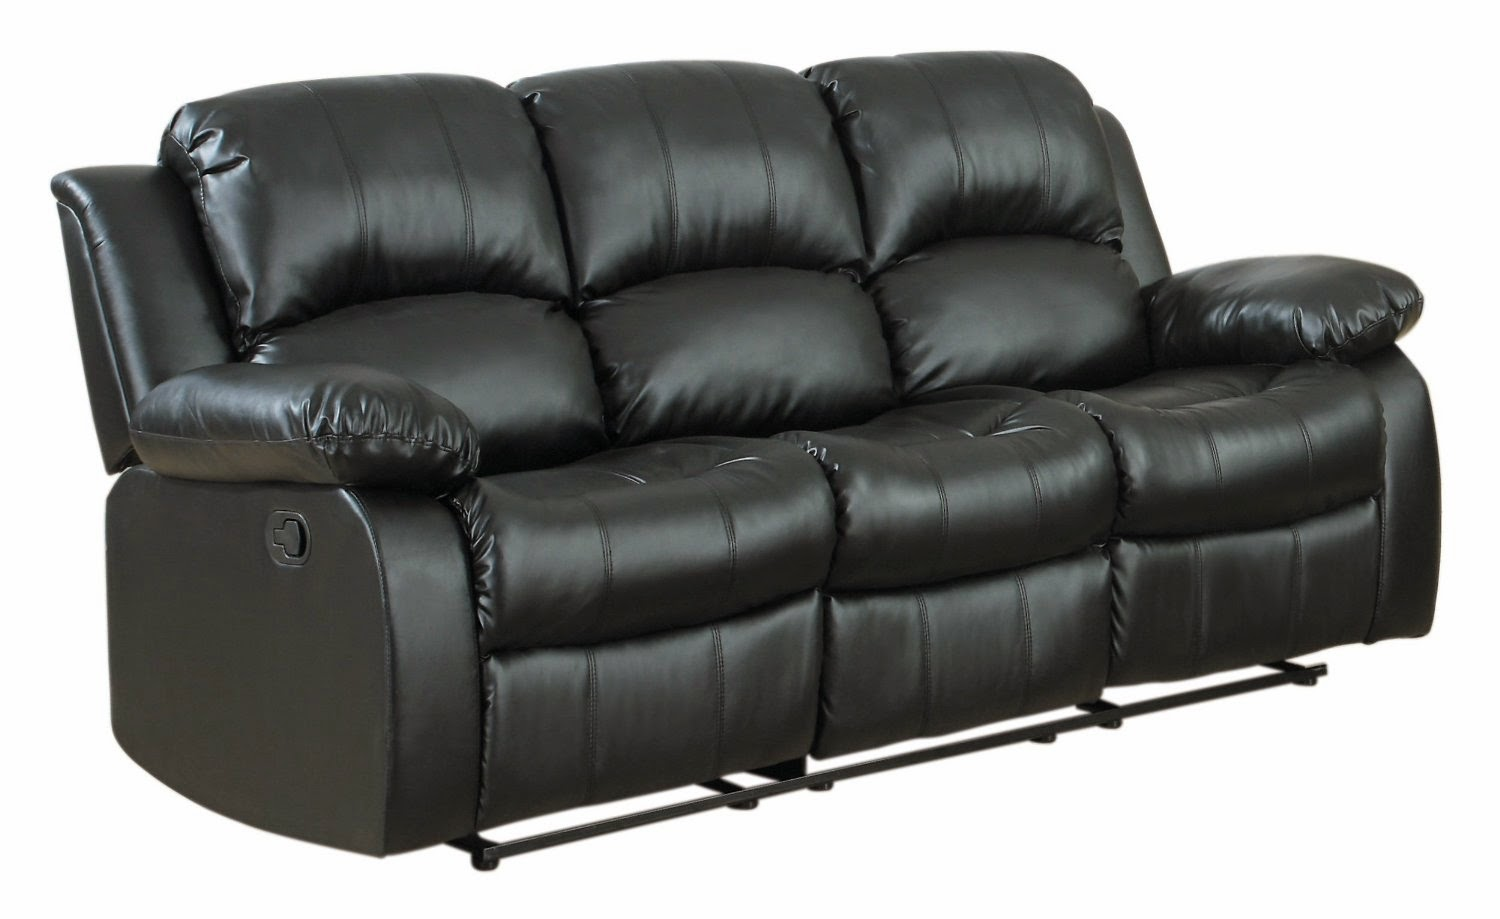 modern bonded leather sectional sofa with recliners gavin costco the best home furnishings reclining reviews